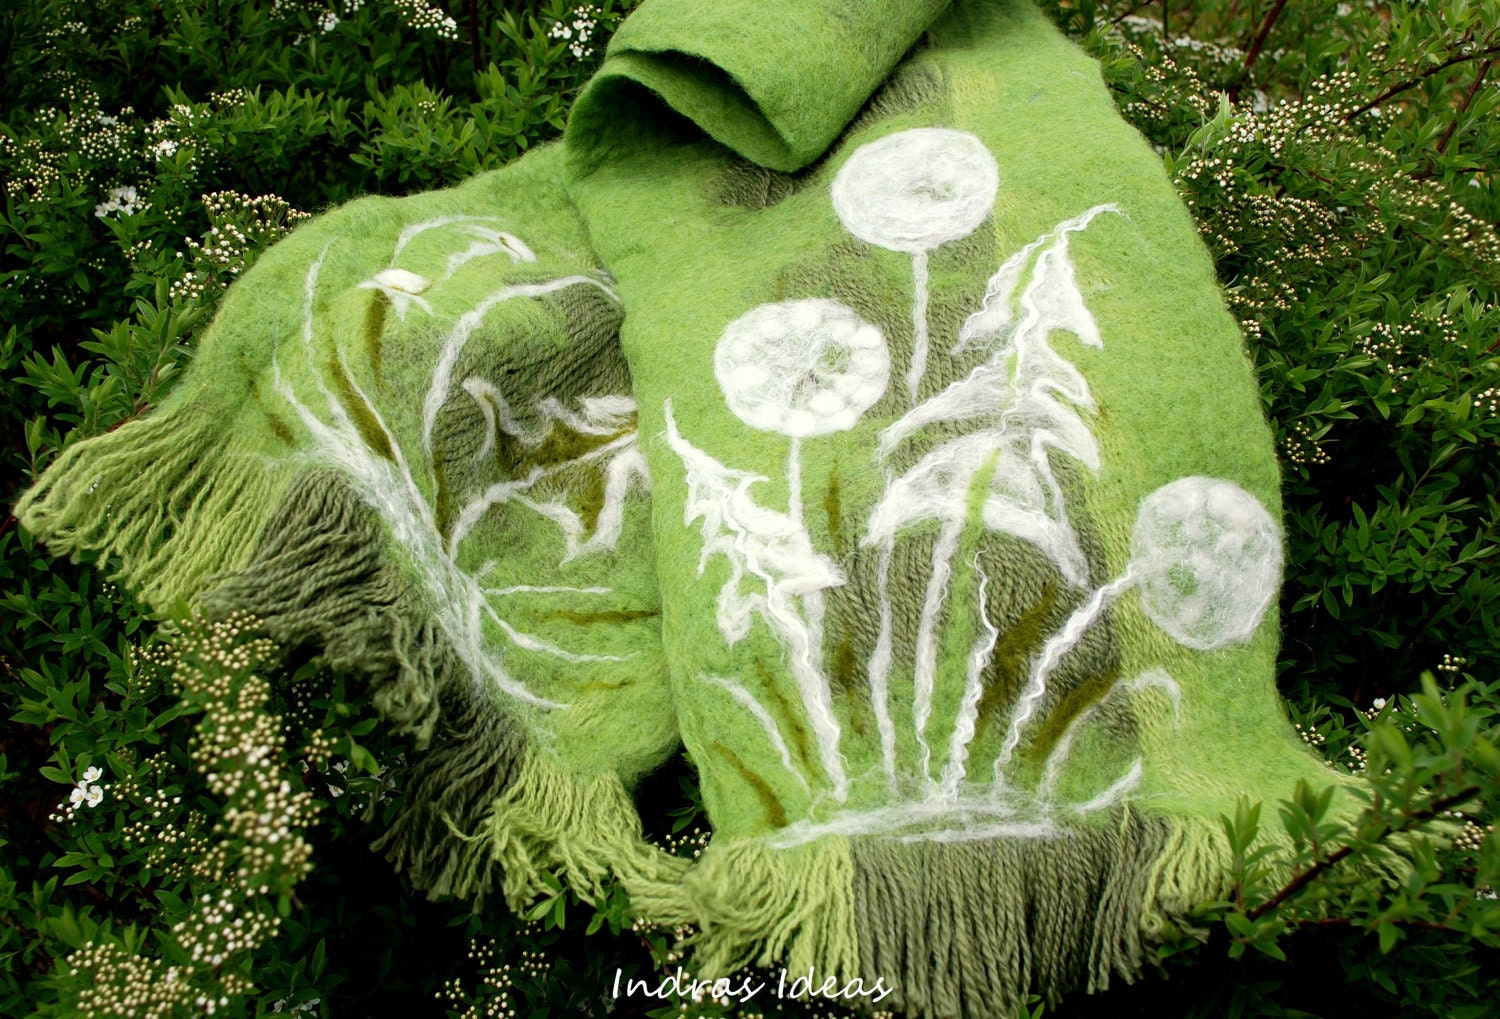 Green, soft wool scarf with white snowy puff fluff dandelion .. - Indrasideas